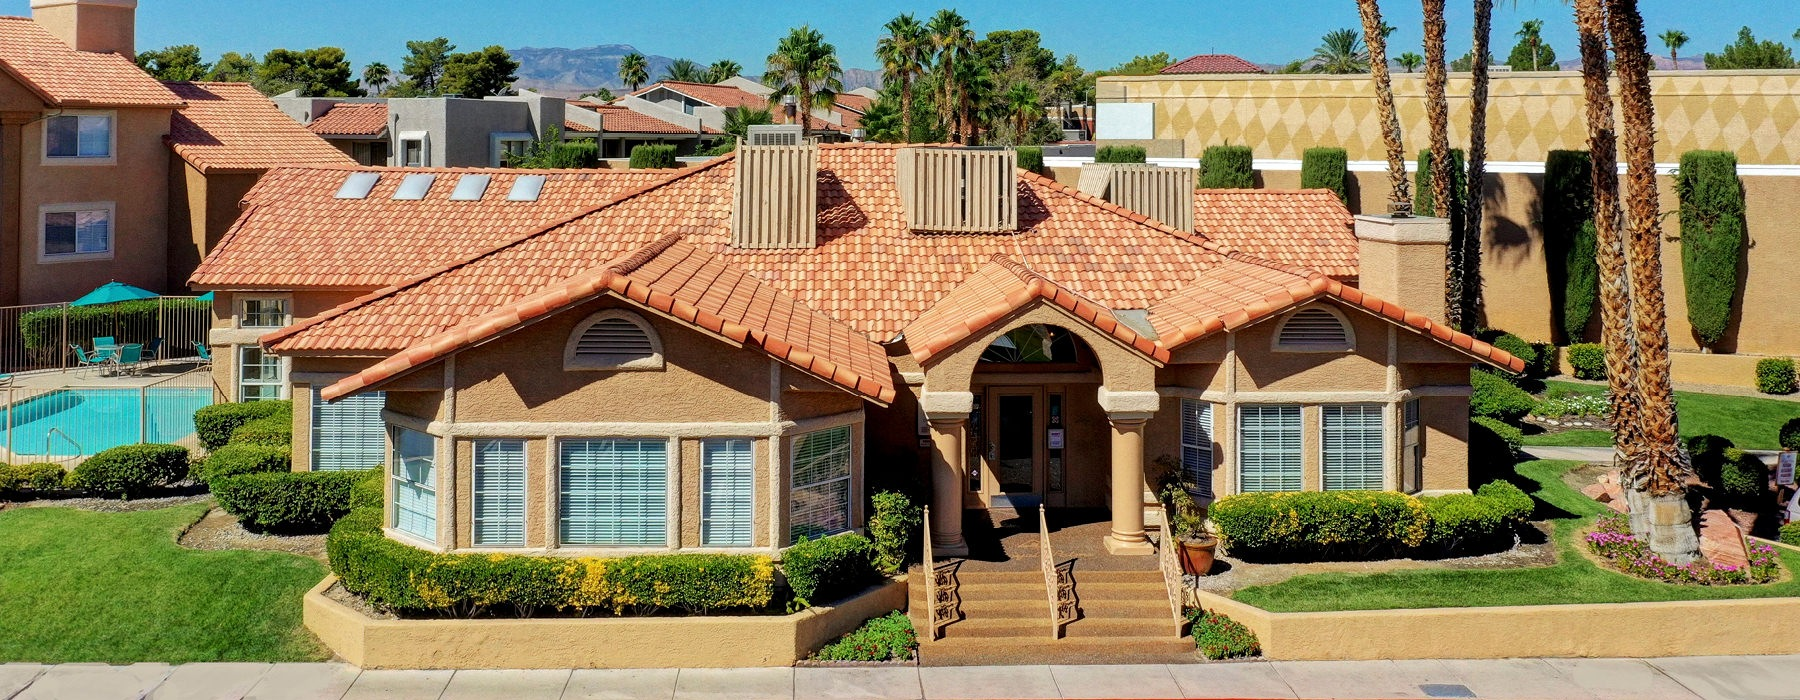 royal palms provides easy access to the Strip and I-15 and 215 freeways